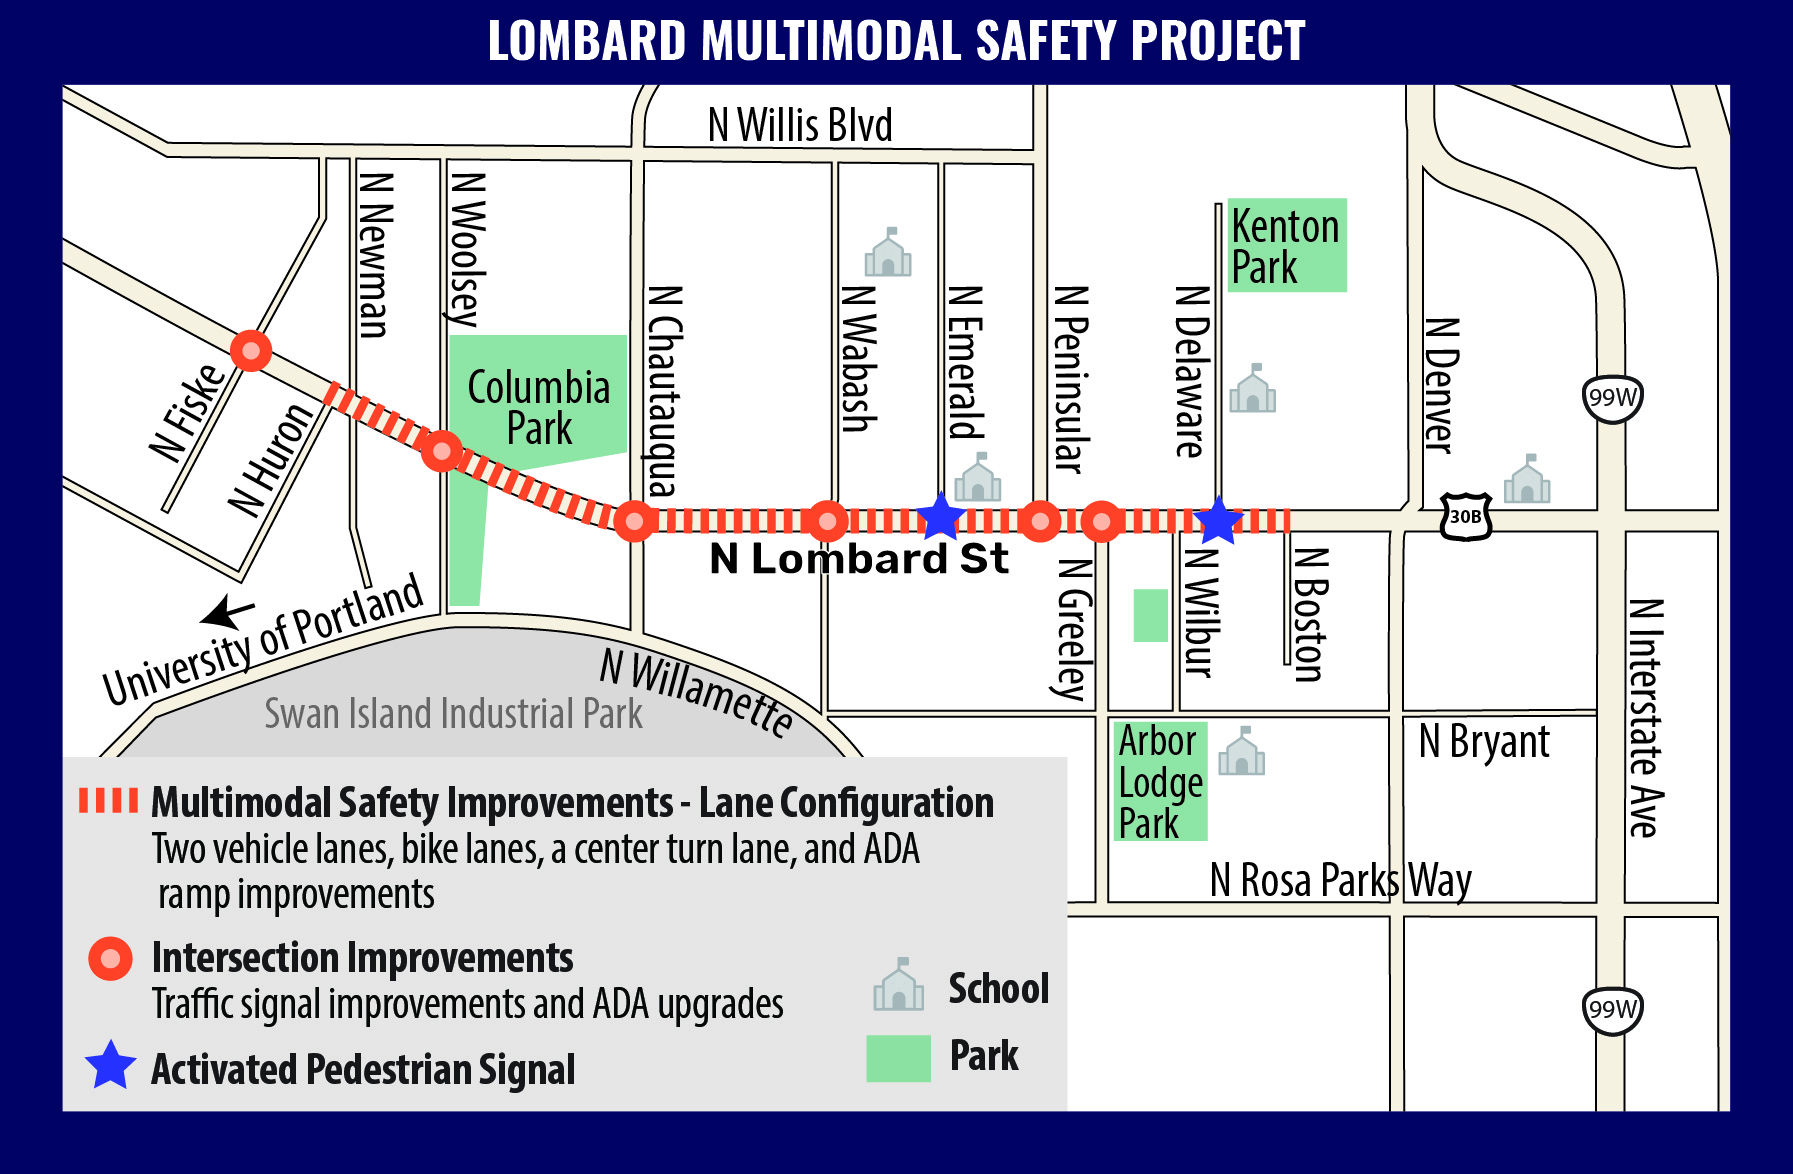 A map of the project area on N Lombard Street.